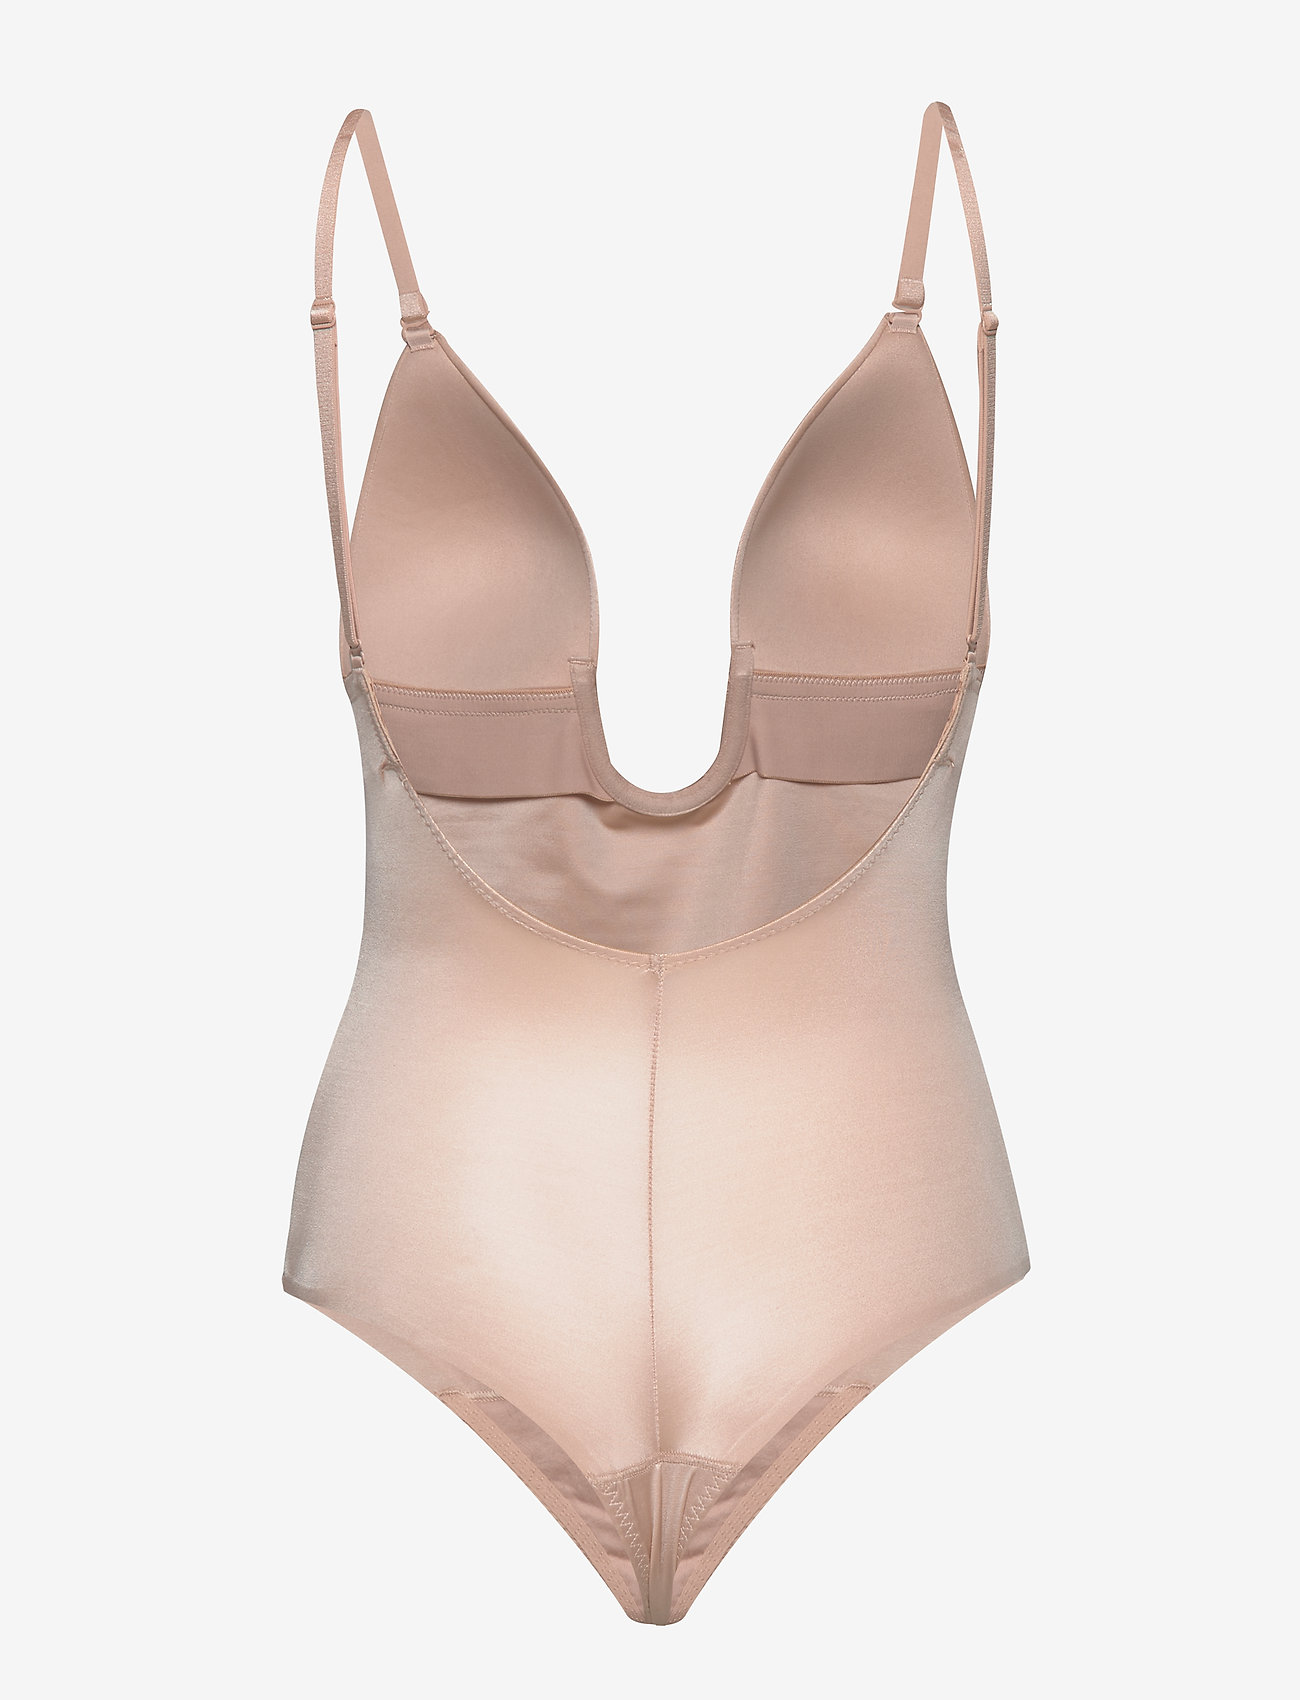 Spanx - THONG B-SUIT - bodies & slips - champagne beige - 1